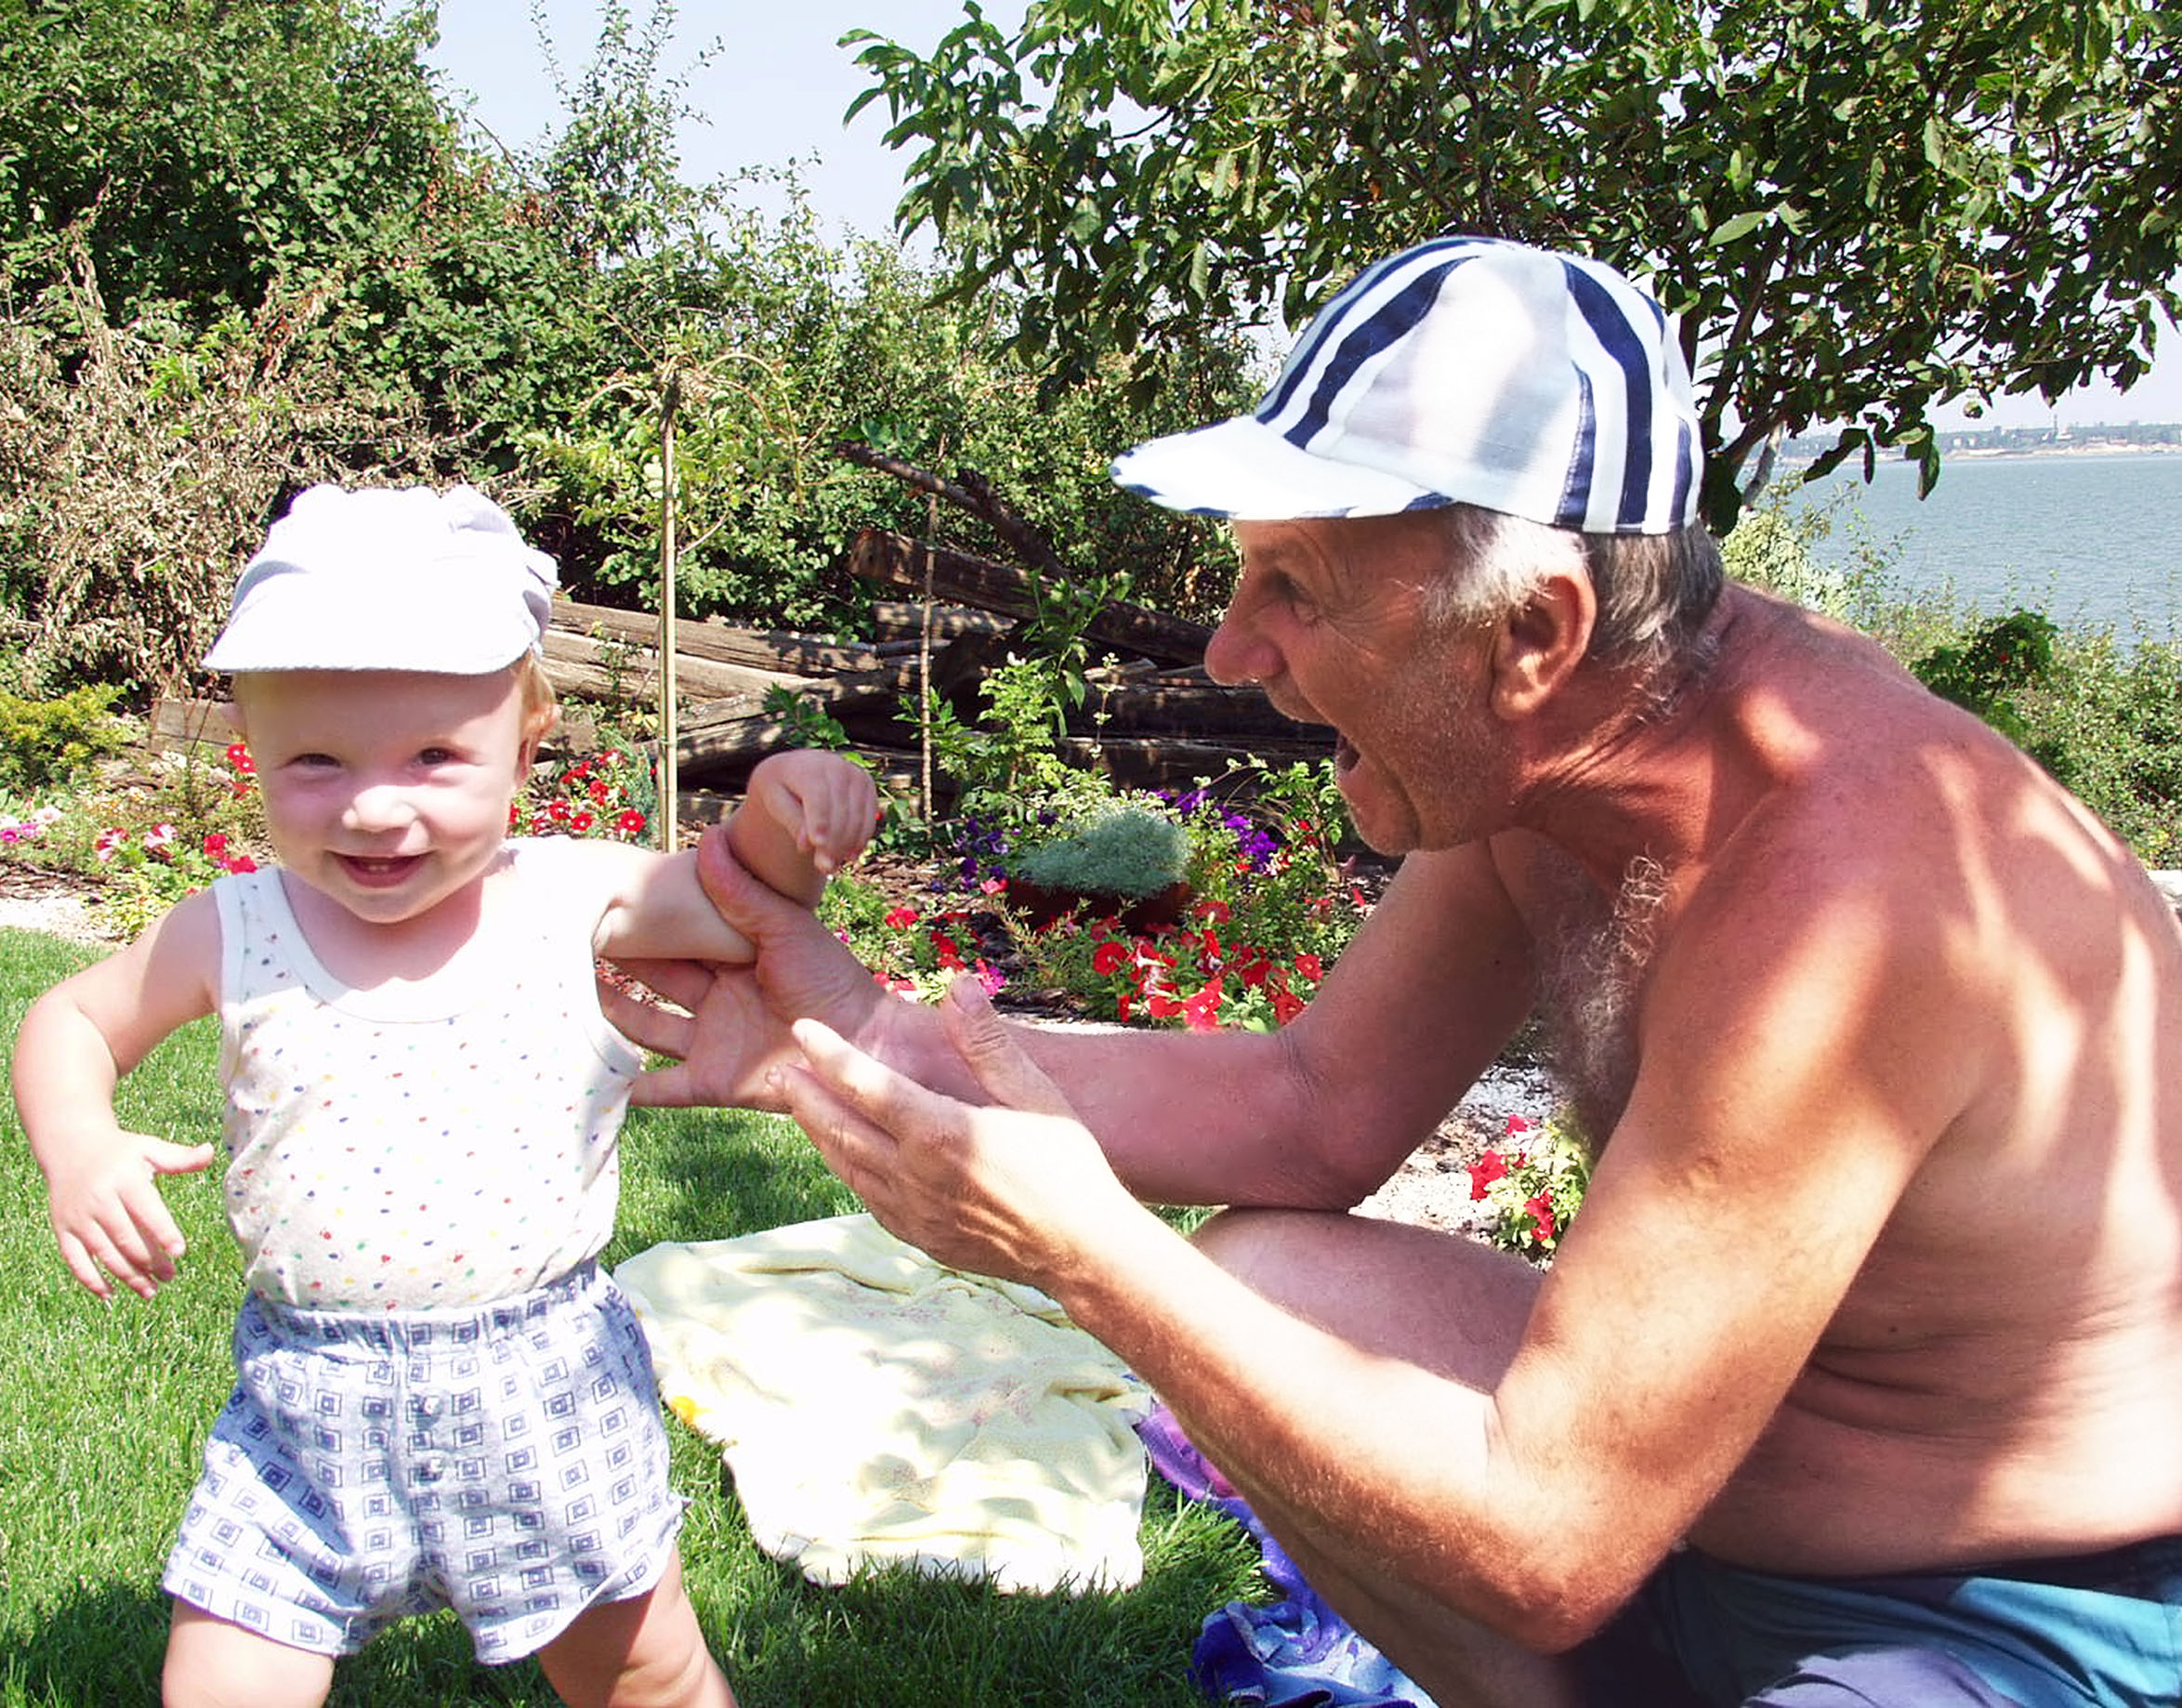 Grandfather and grandson in the garden